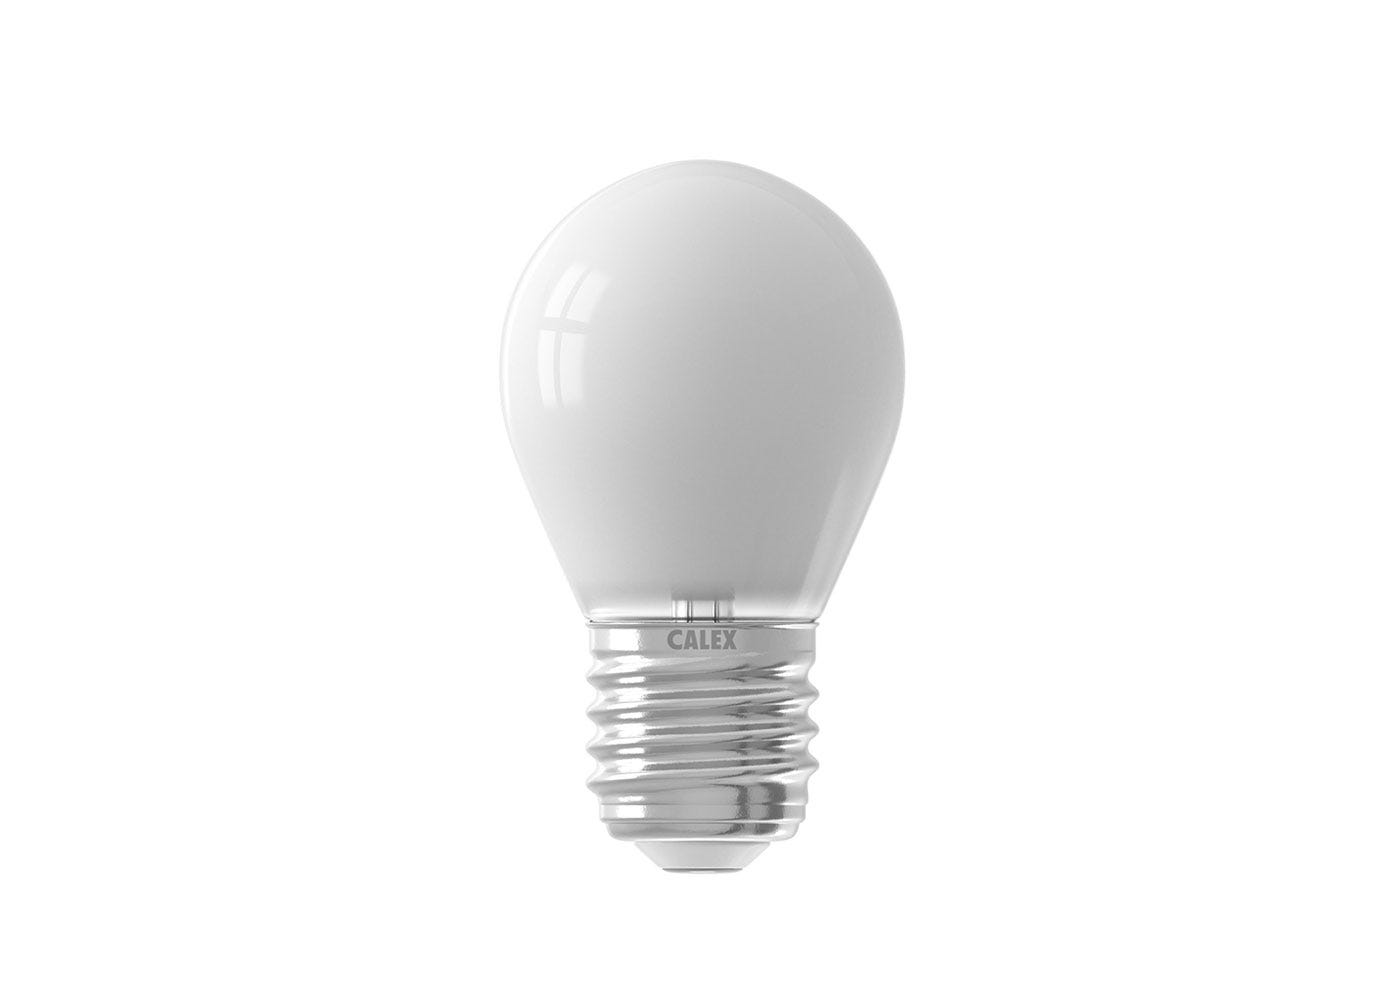 As shown: Smart Ball LED Dimmable Bulb White 4.5W E27